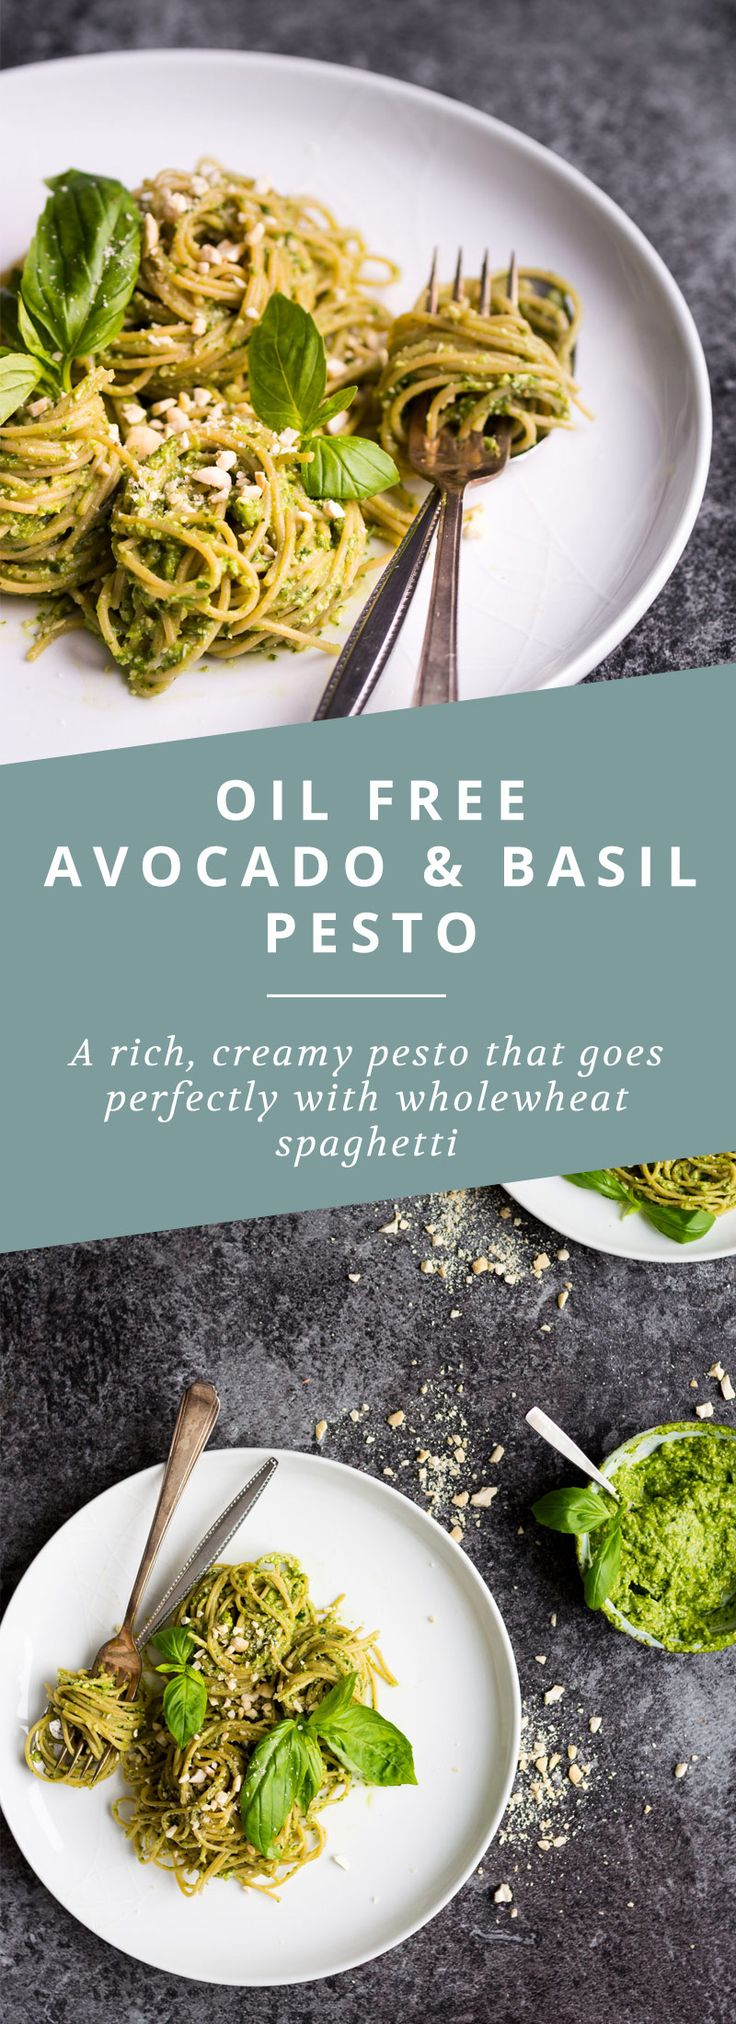 A creamy, oil free basil and avocado pesto that's full of healthy fats